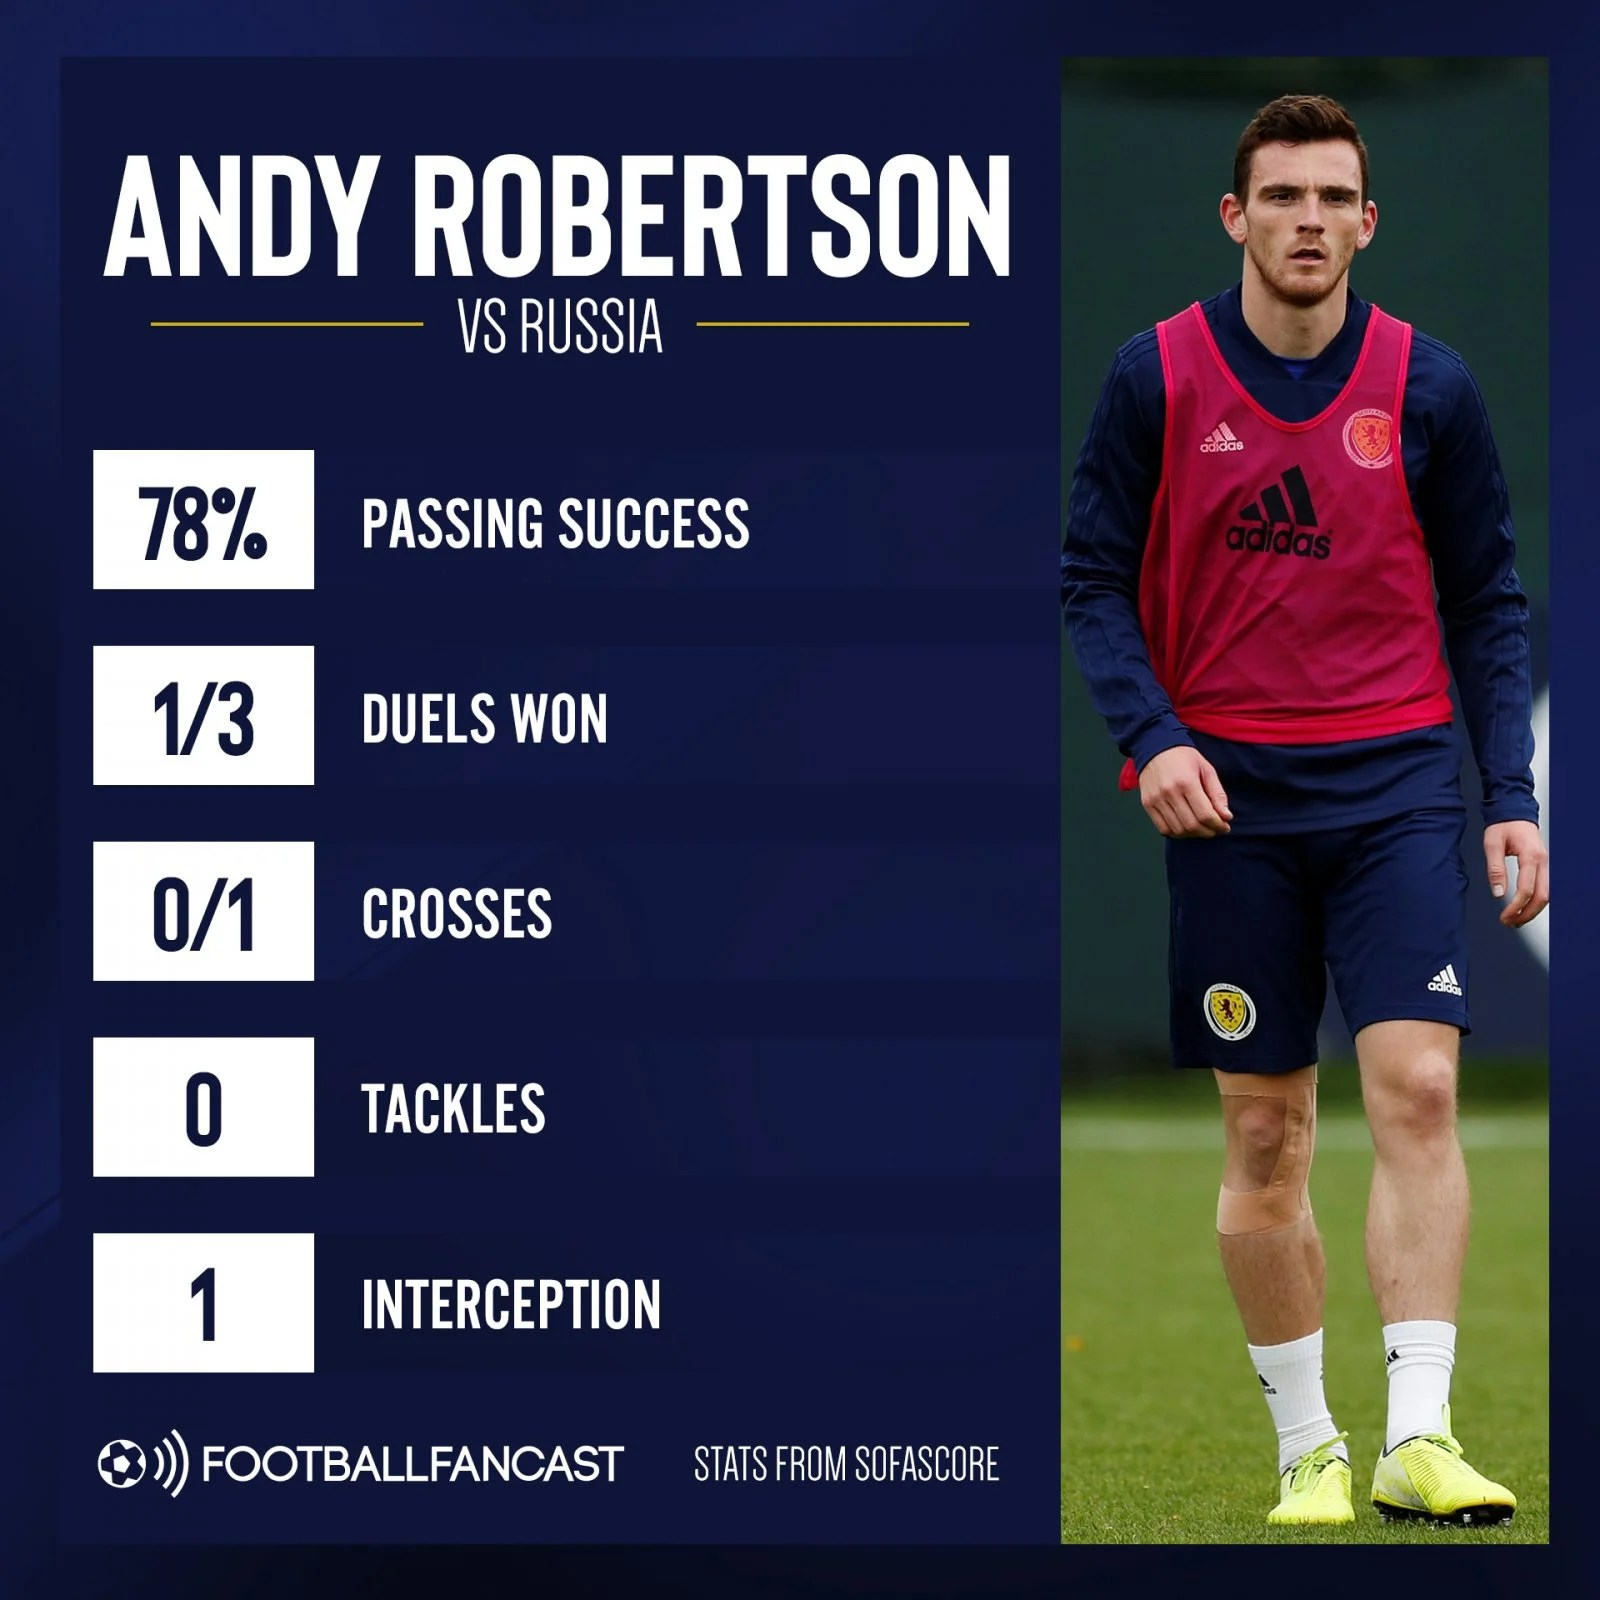 Andy Robertson vs Russia